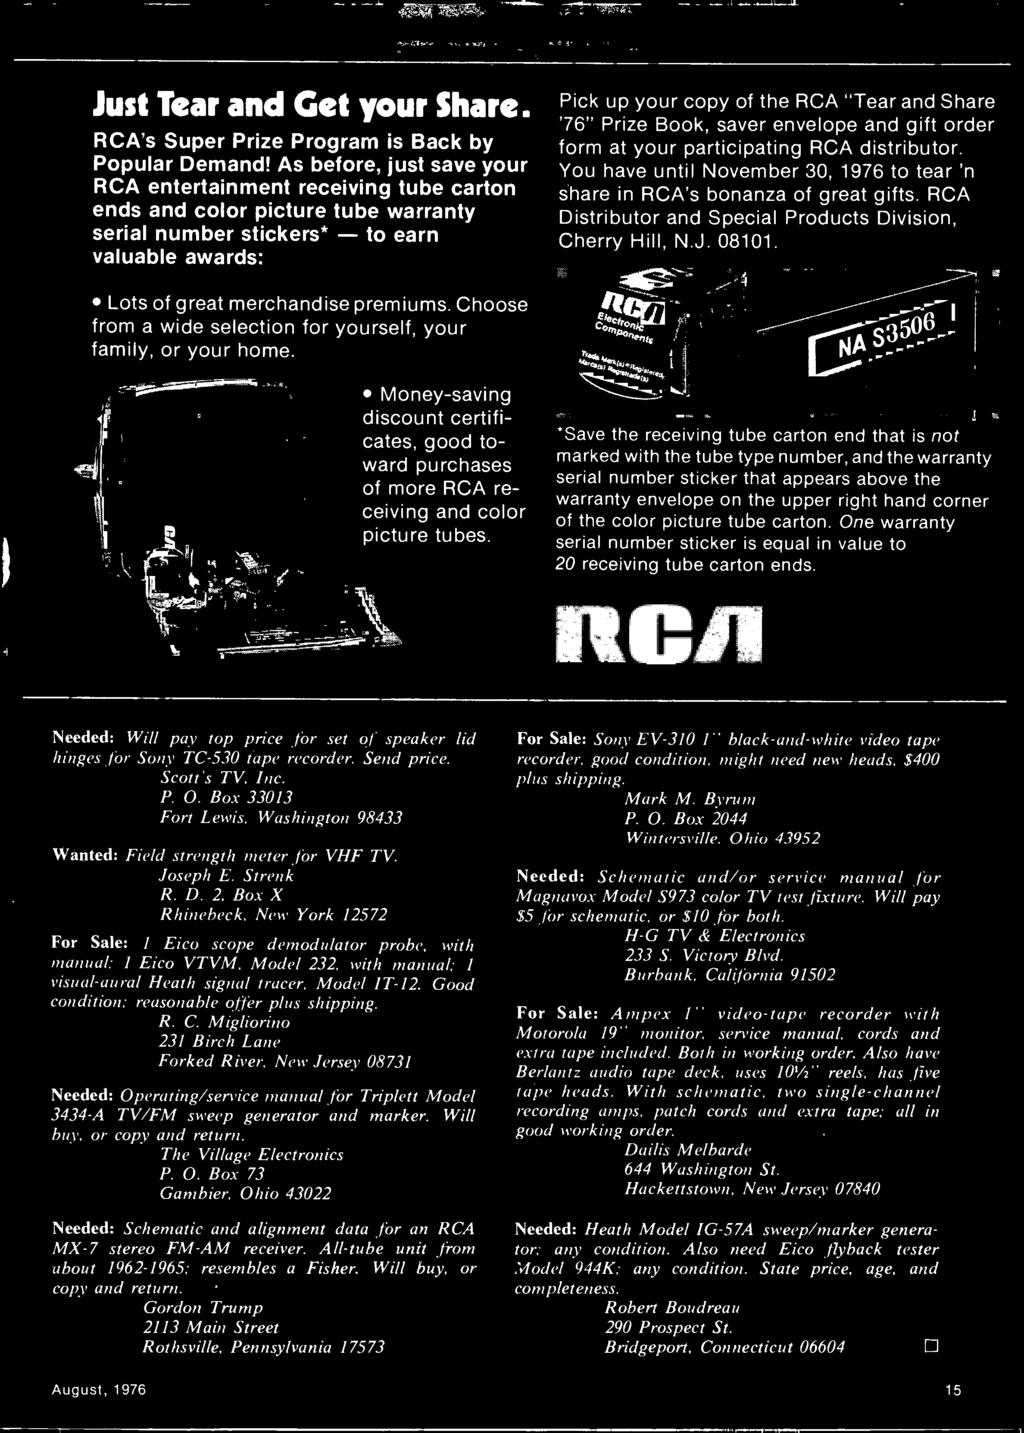 New Fashion Symcure Manual 1974 Monitor Symptoms & Cures For Branded Monitors Used In Games Manuals & Guides